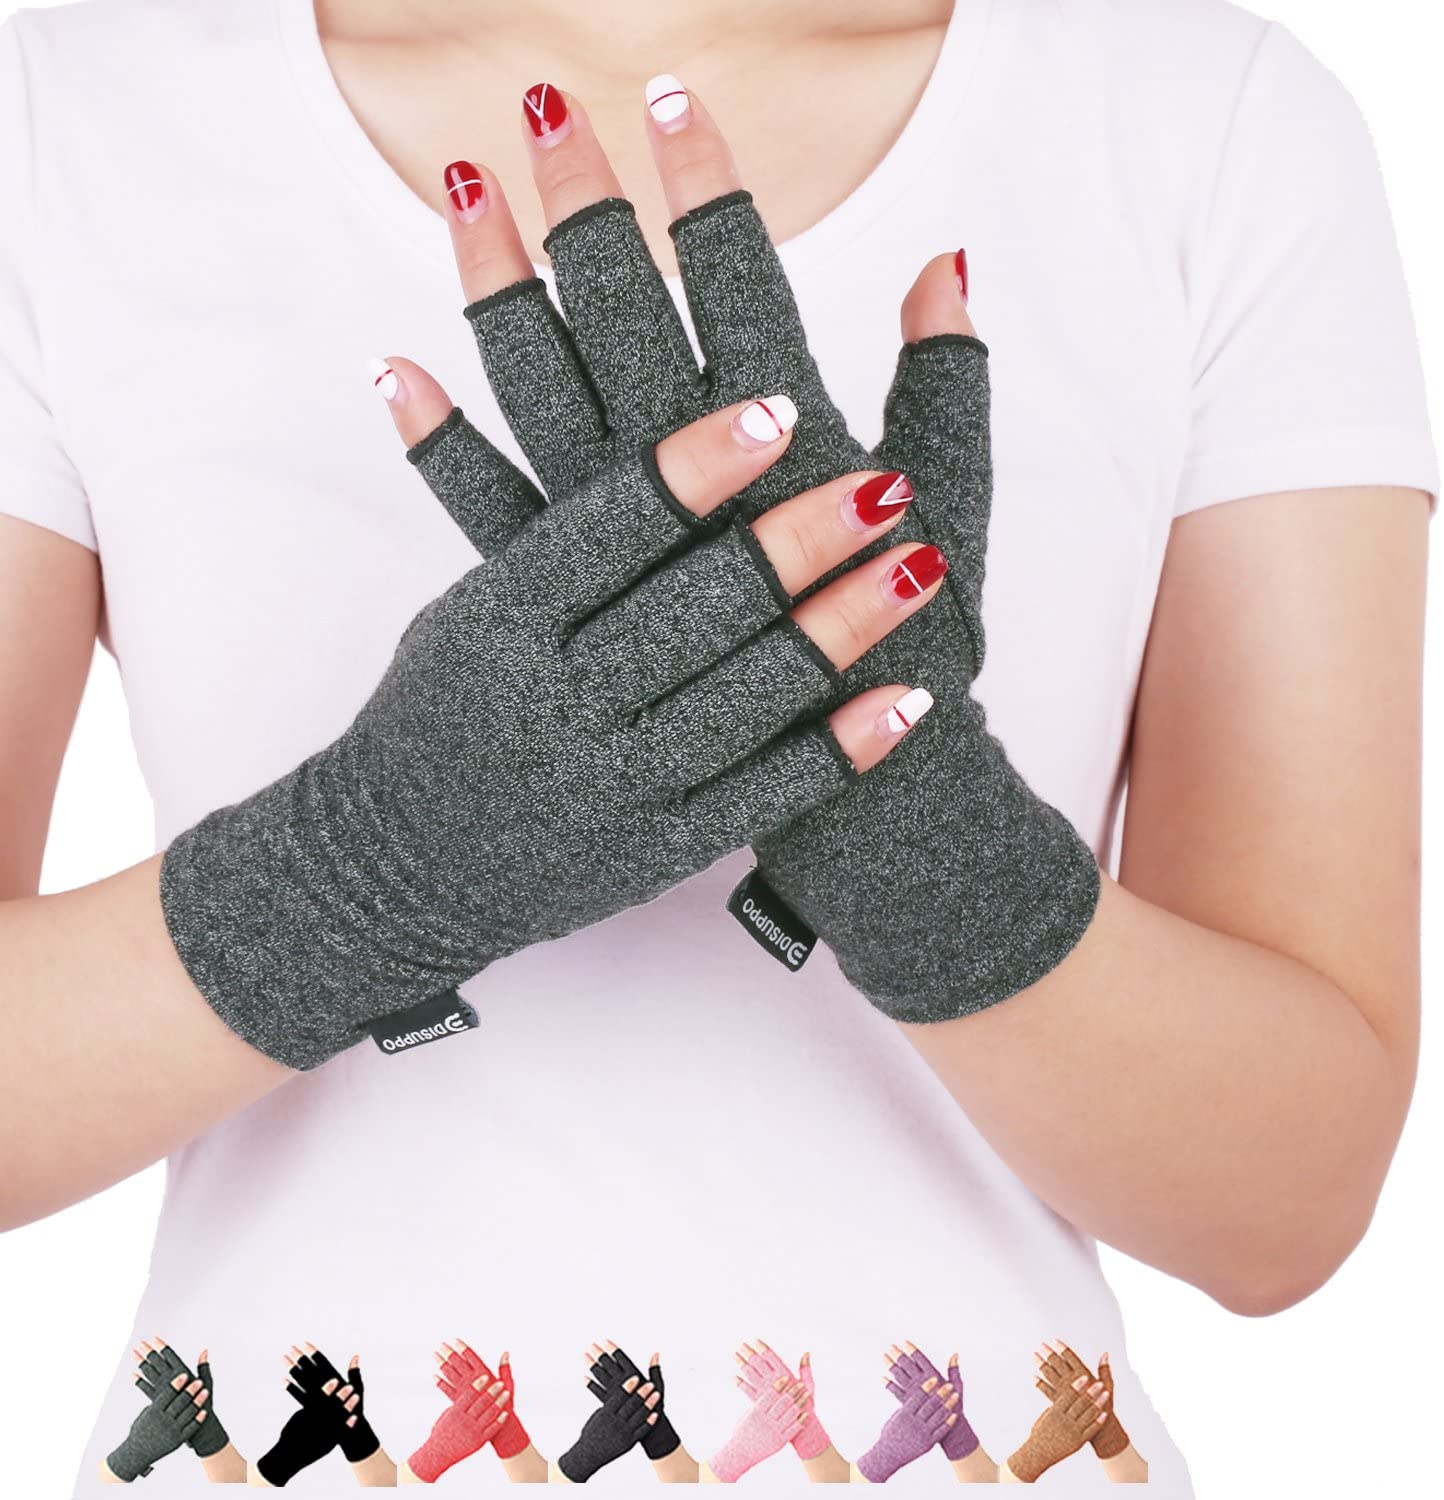 Arthritis Compression Gloves Relieve Pain from Rheumatoid, RSI,Carpal Tunnel, Hand Gloves Fingerless for Computer Typing and Dailywork, Support for Hands and Joints (Small, Grey)